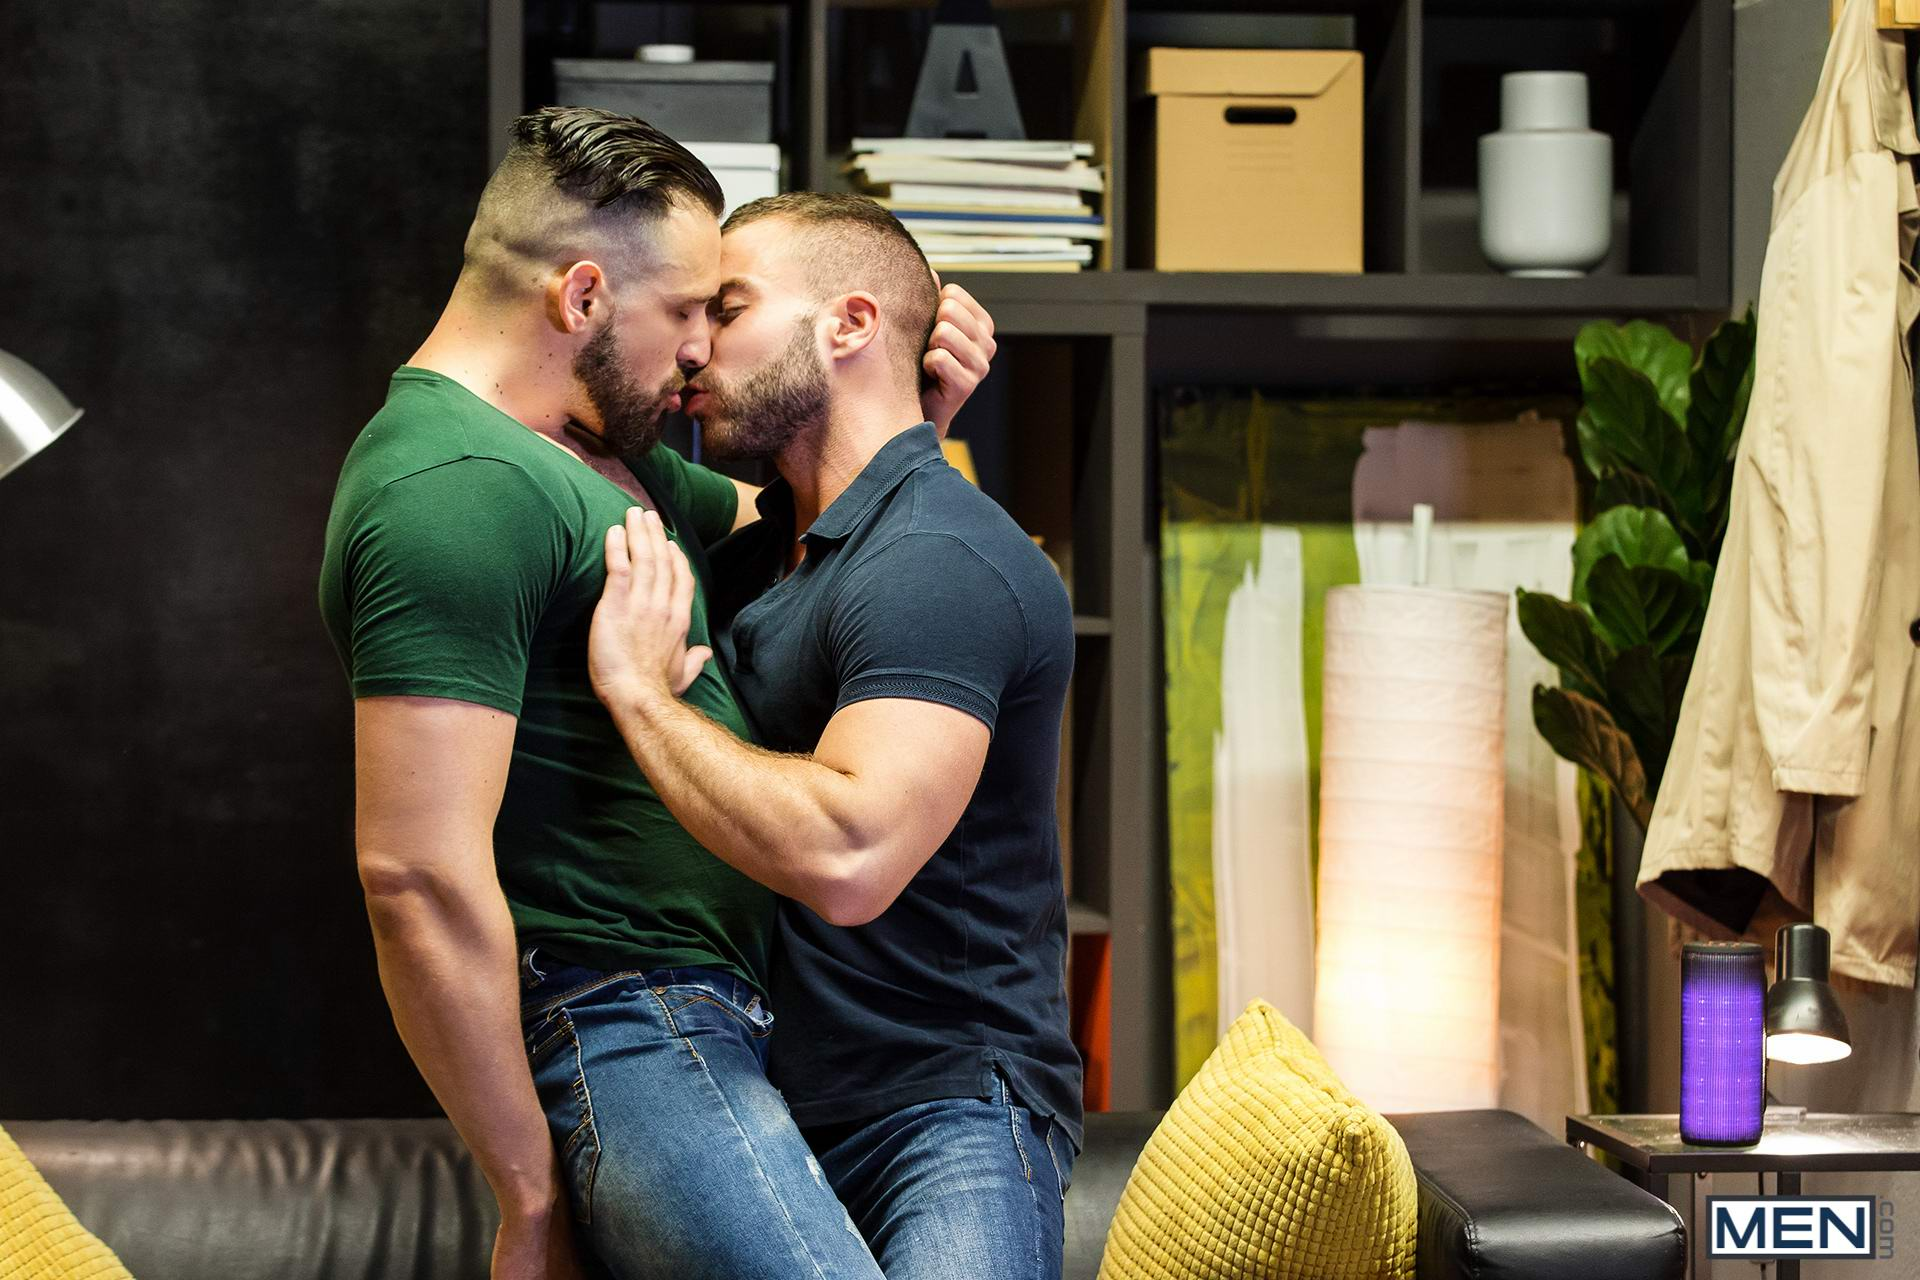 Passionate retro hunks fucking each other hard